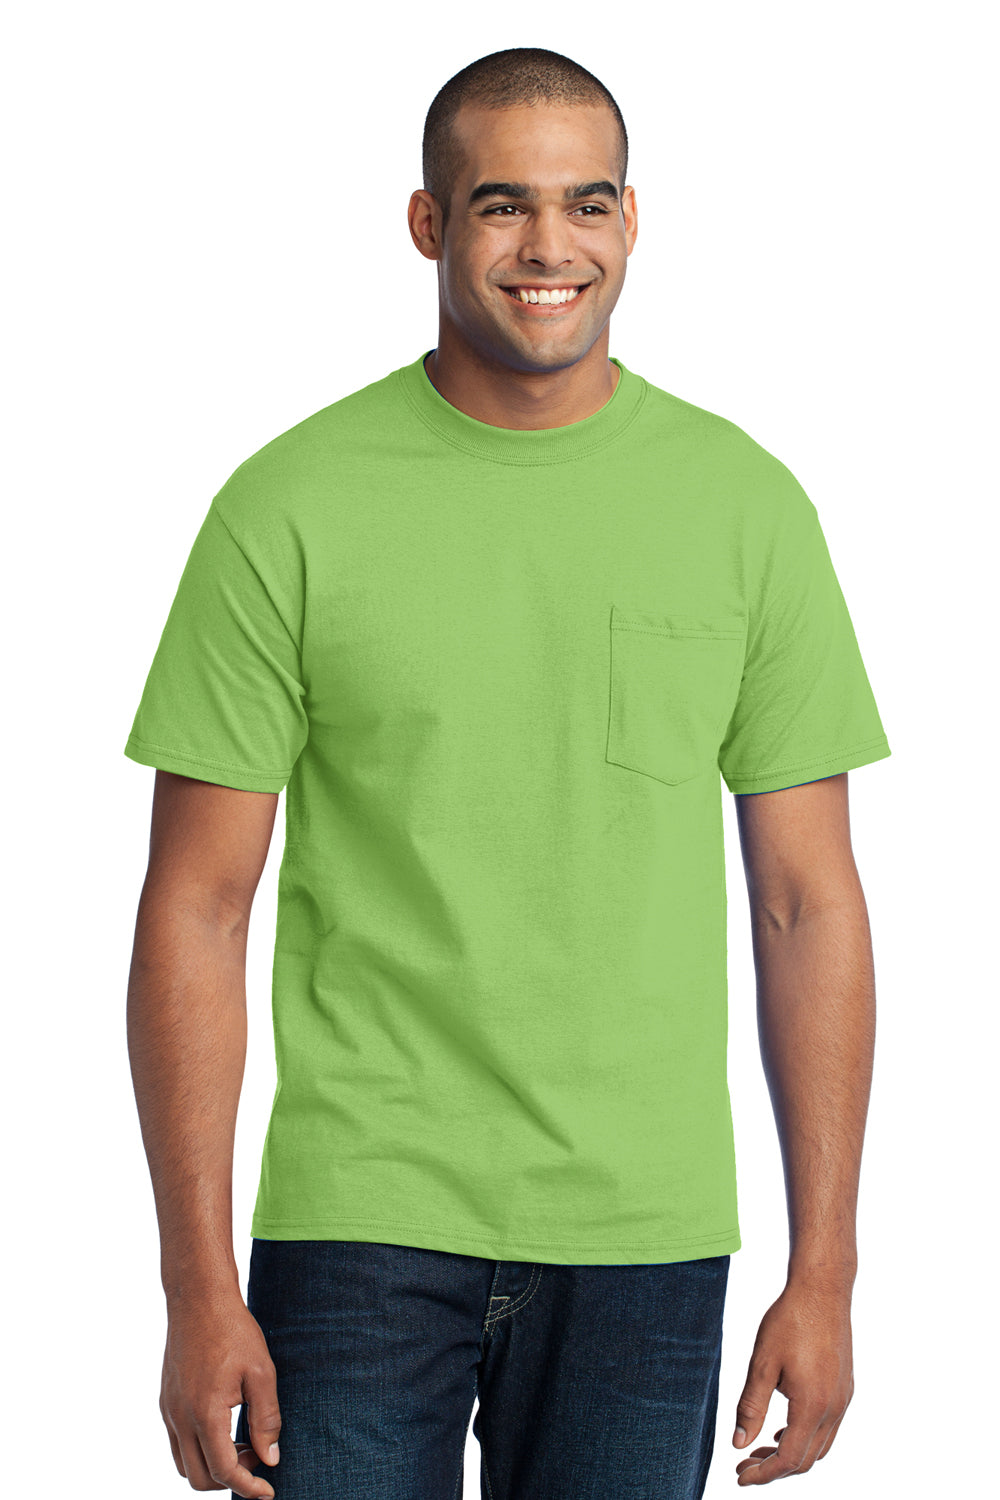 Port & Company PC55P Mens Core Short Sleeve Crewneck T-Shirt w/ Pocket Lime Green Front